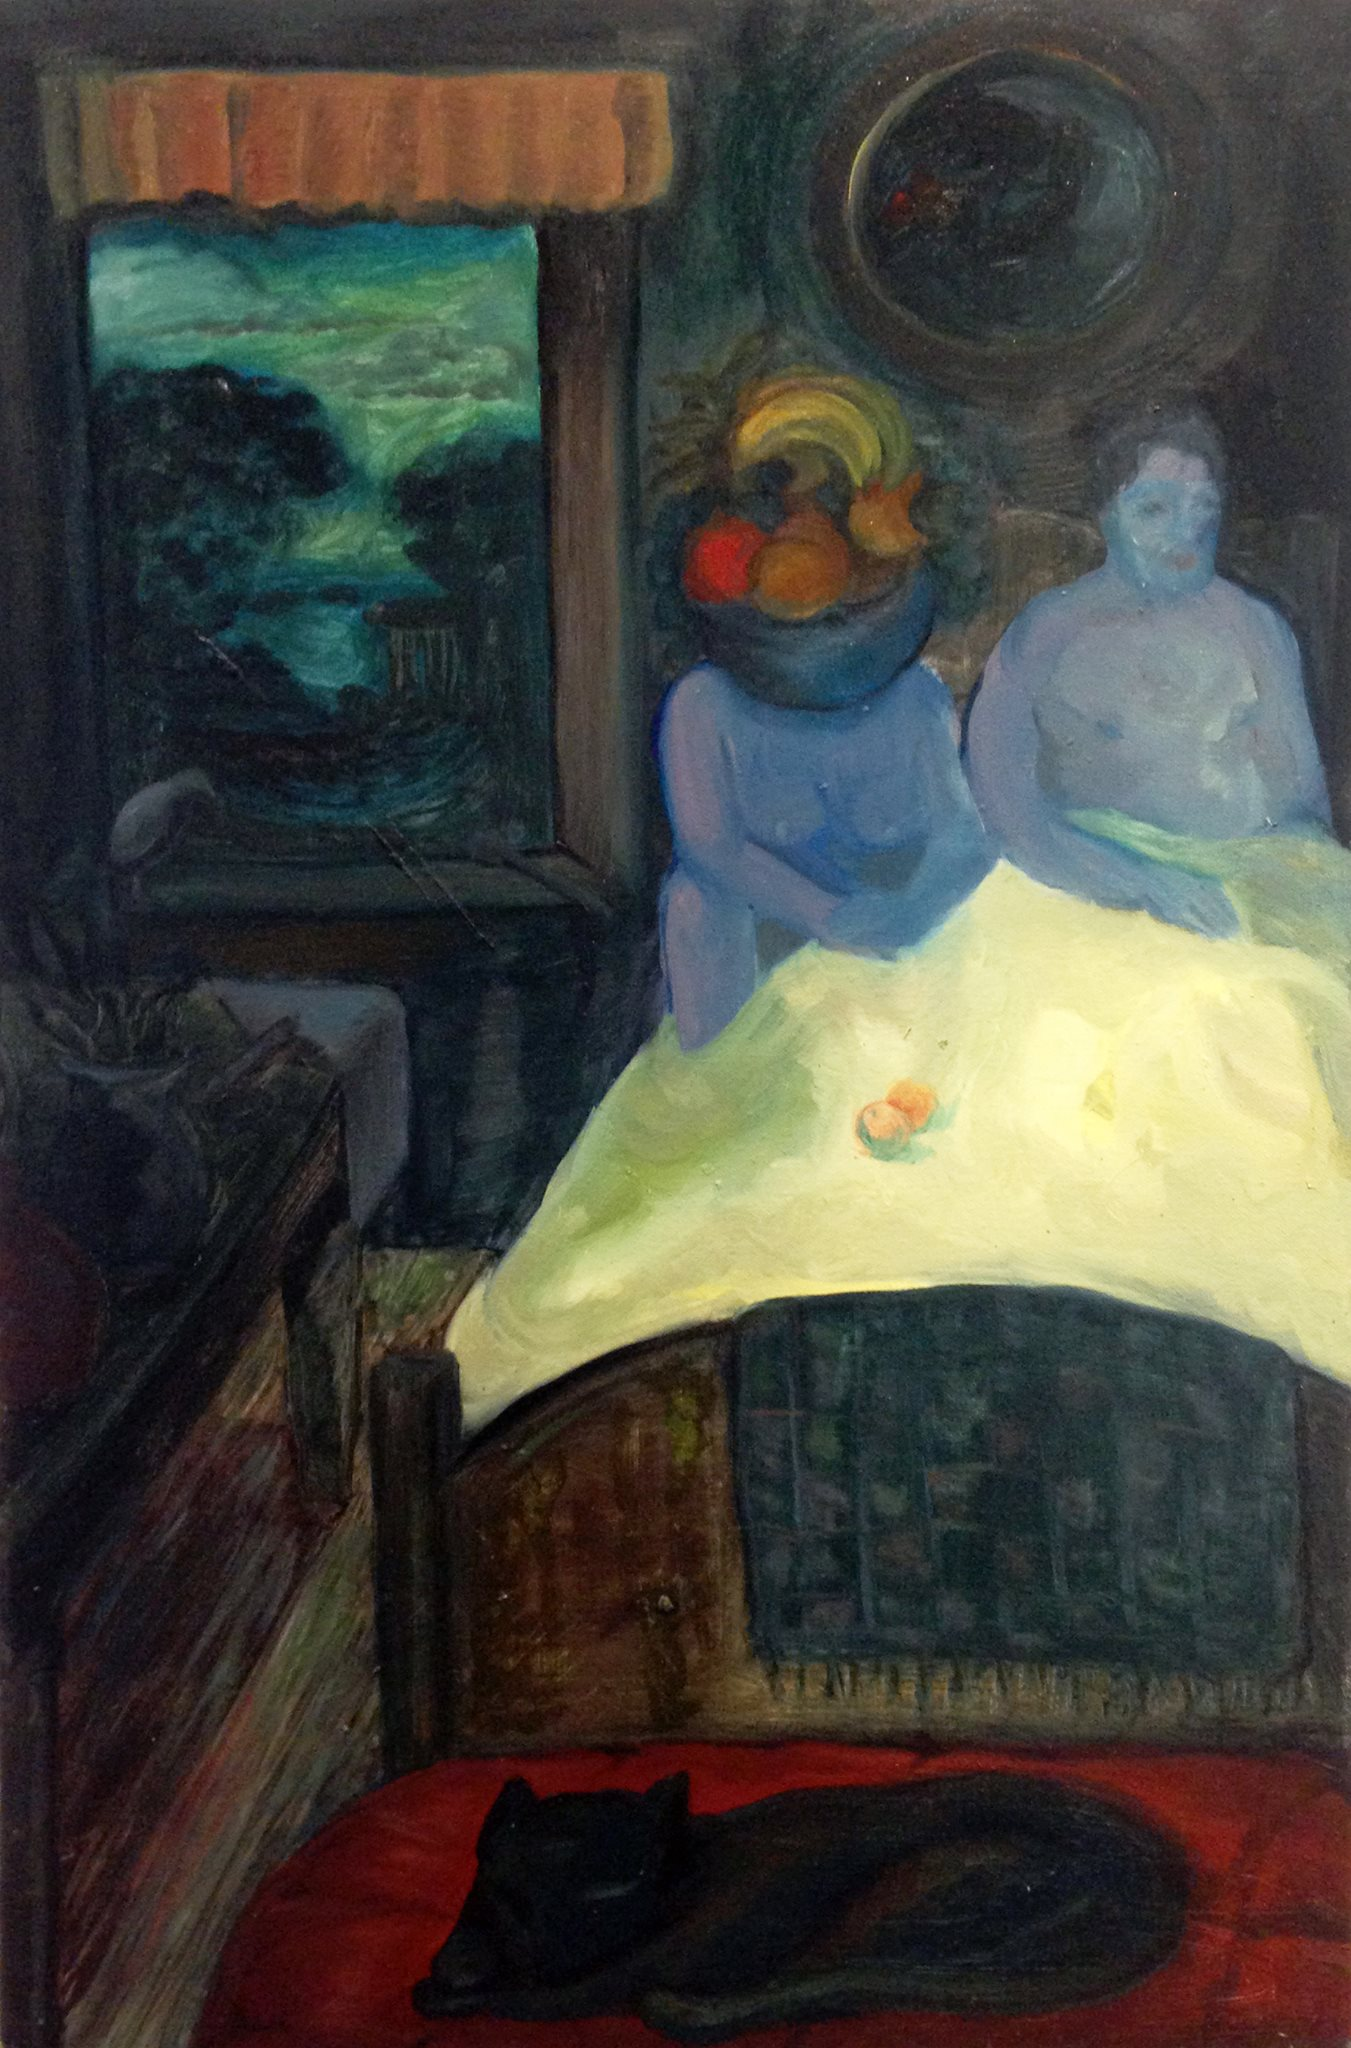 Two figures and bowl of fruit.